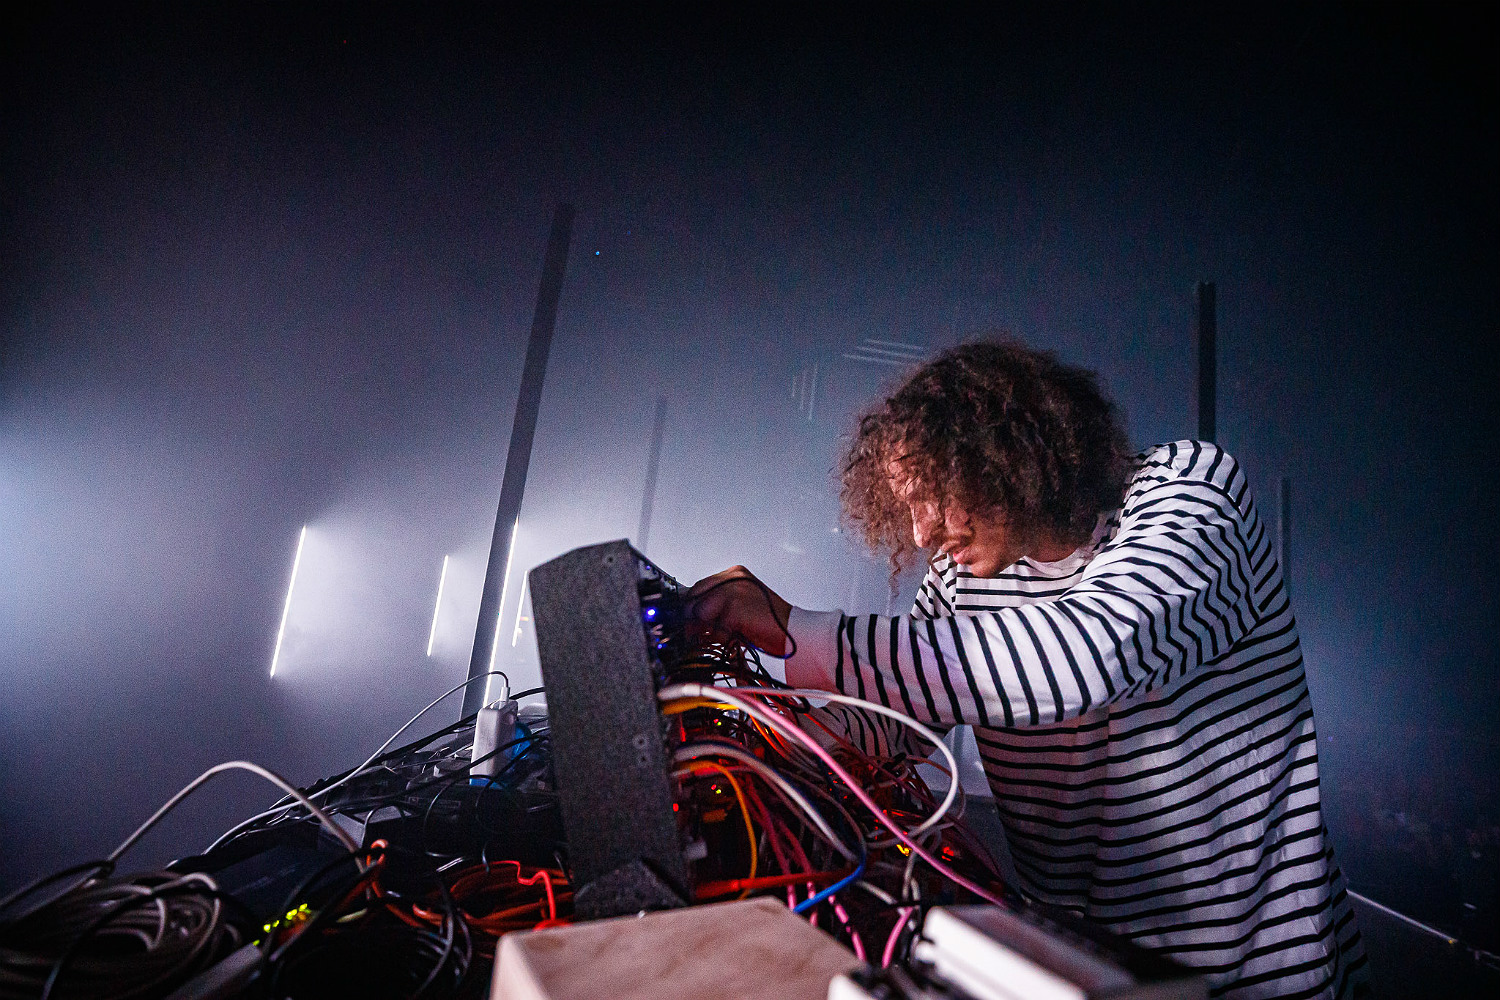 Colin Benders on modular synths, his new A/V show + The Kyteman Orchestra's legacy